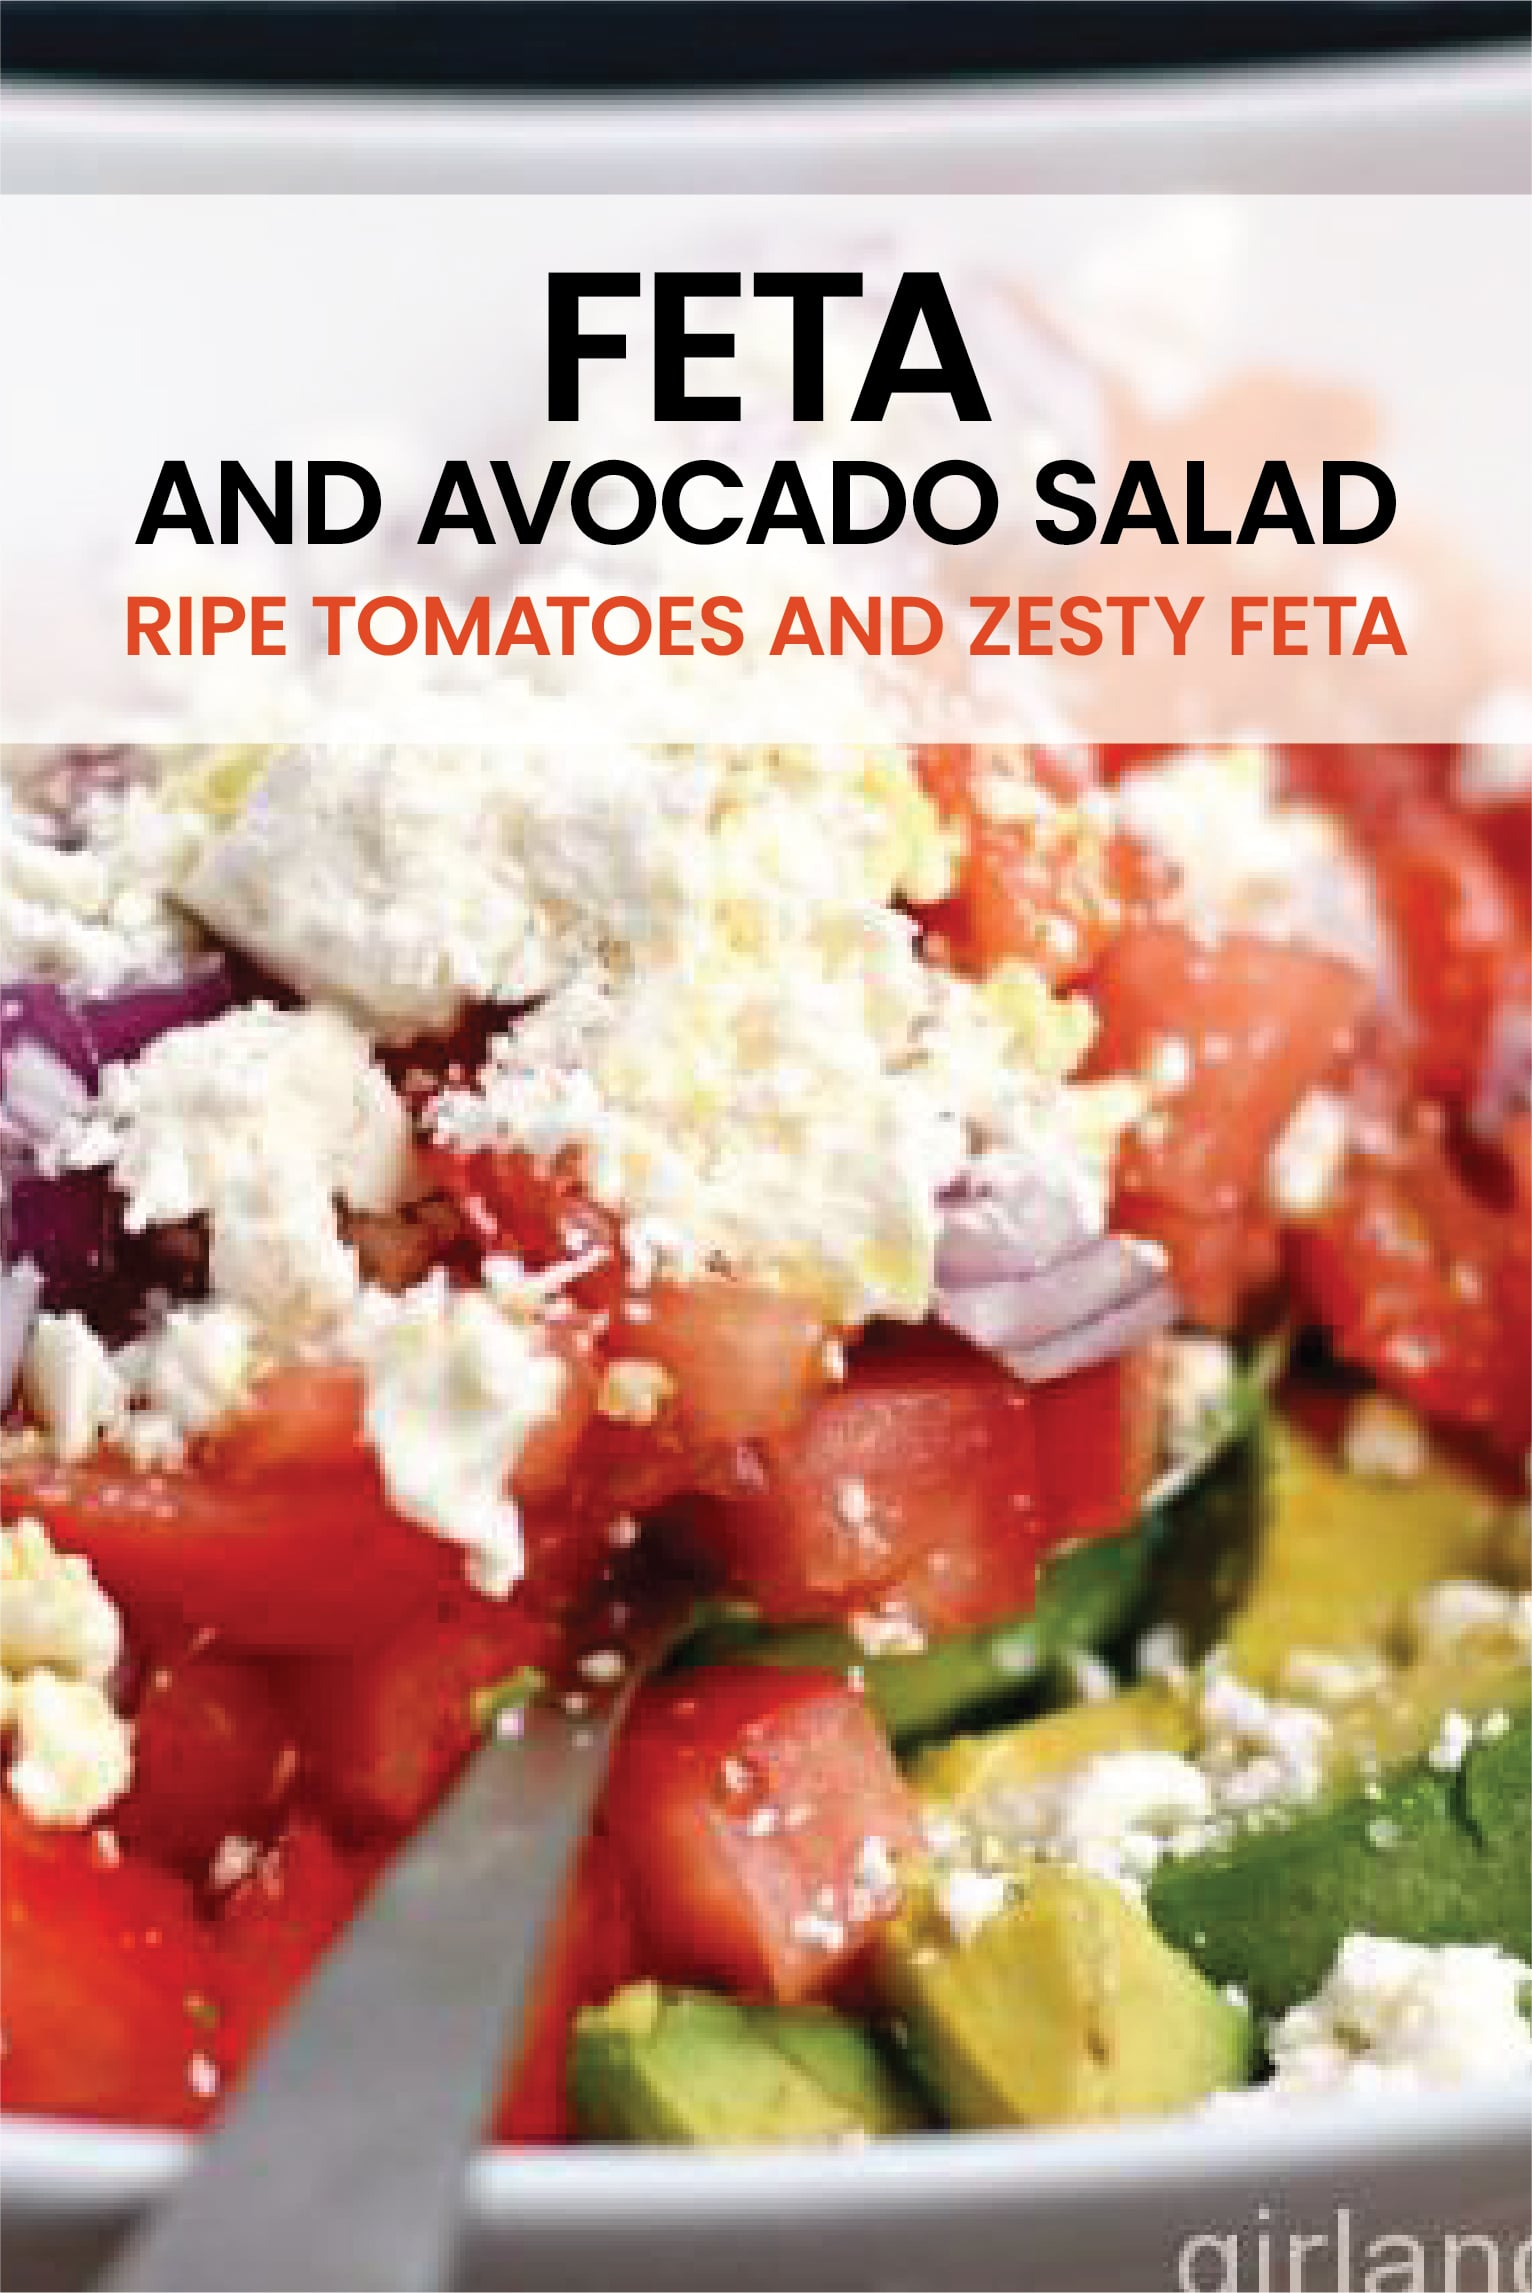 Meet your new best friend for the summer! This super easy feta and avocado salad is full of ripe tomatoes and zesty feta. #feta #salad